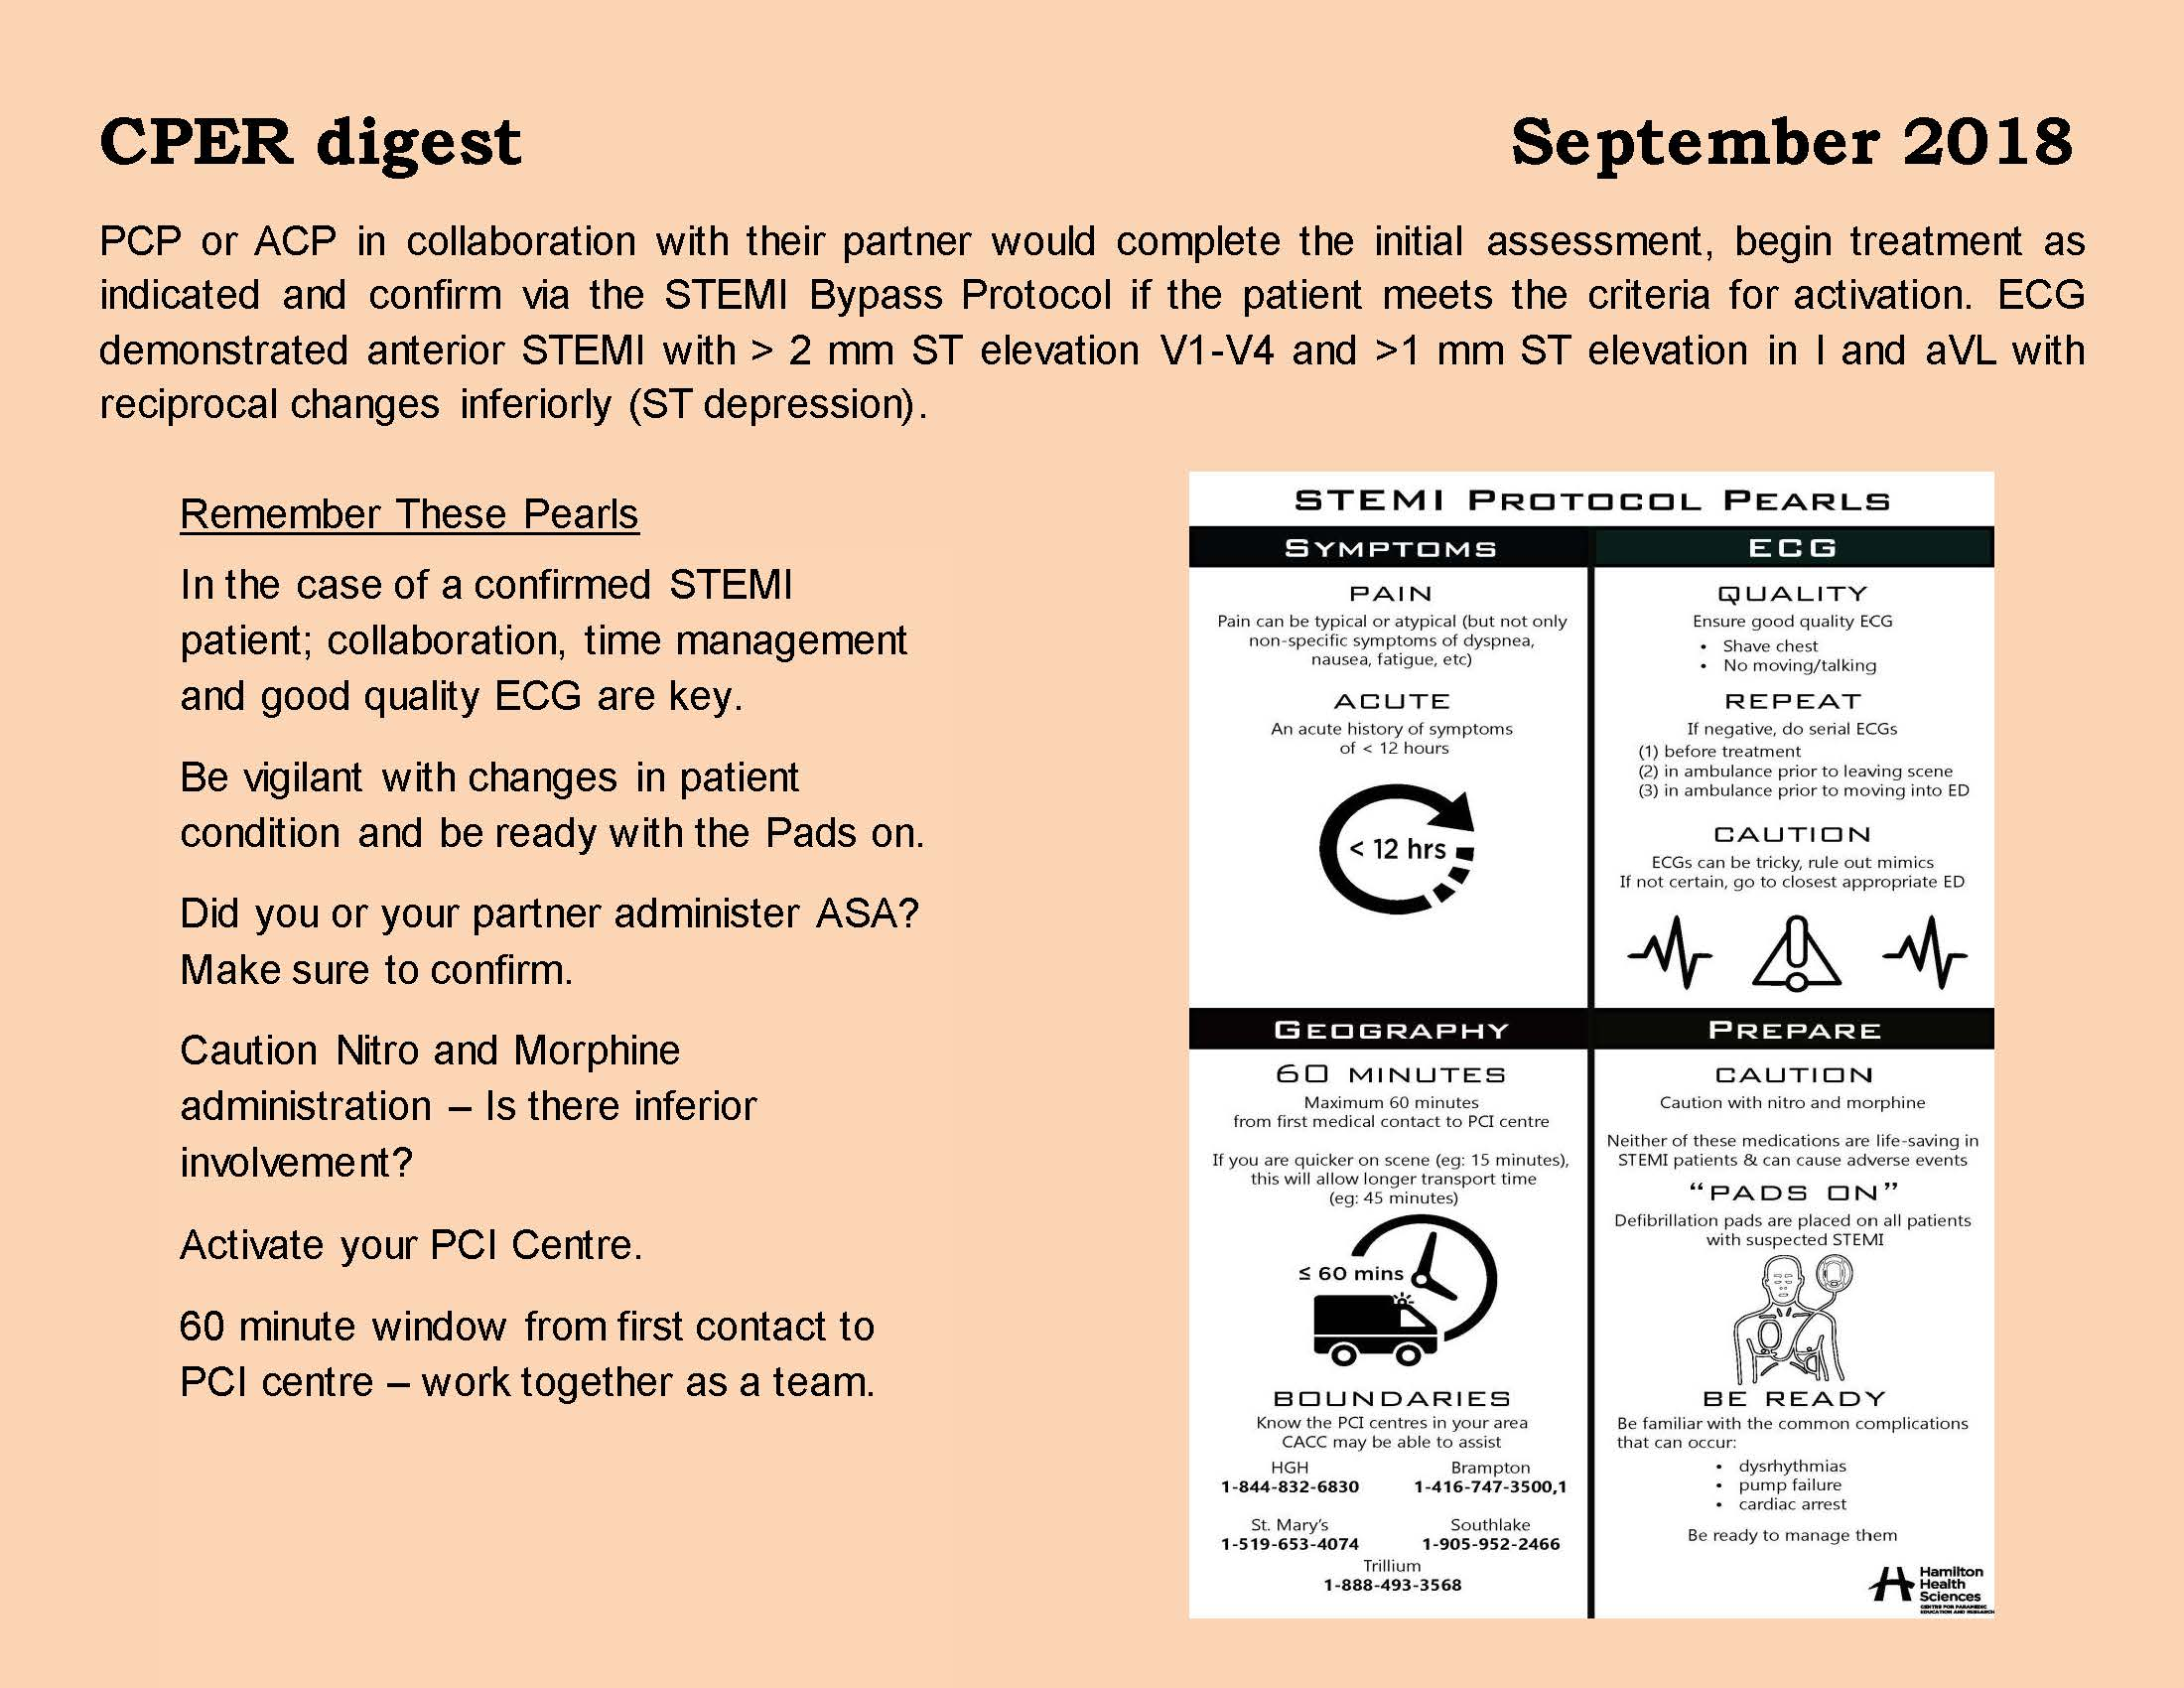 CPER digest September 2018 Final Page 2